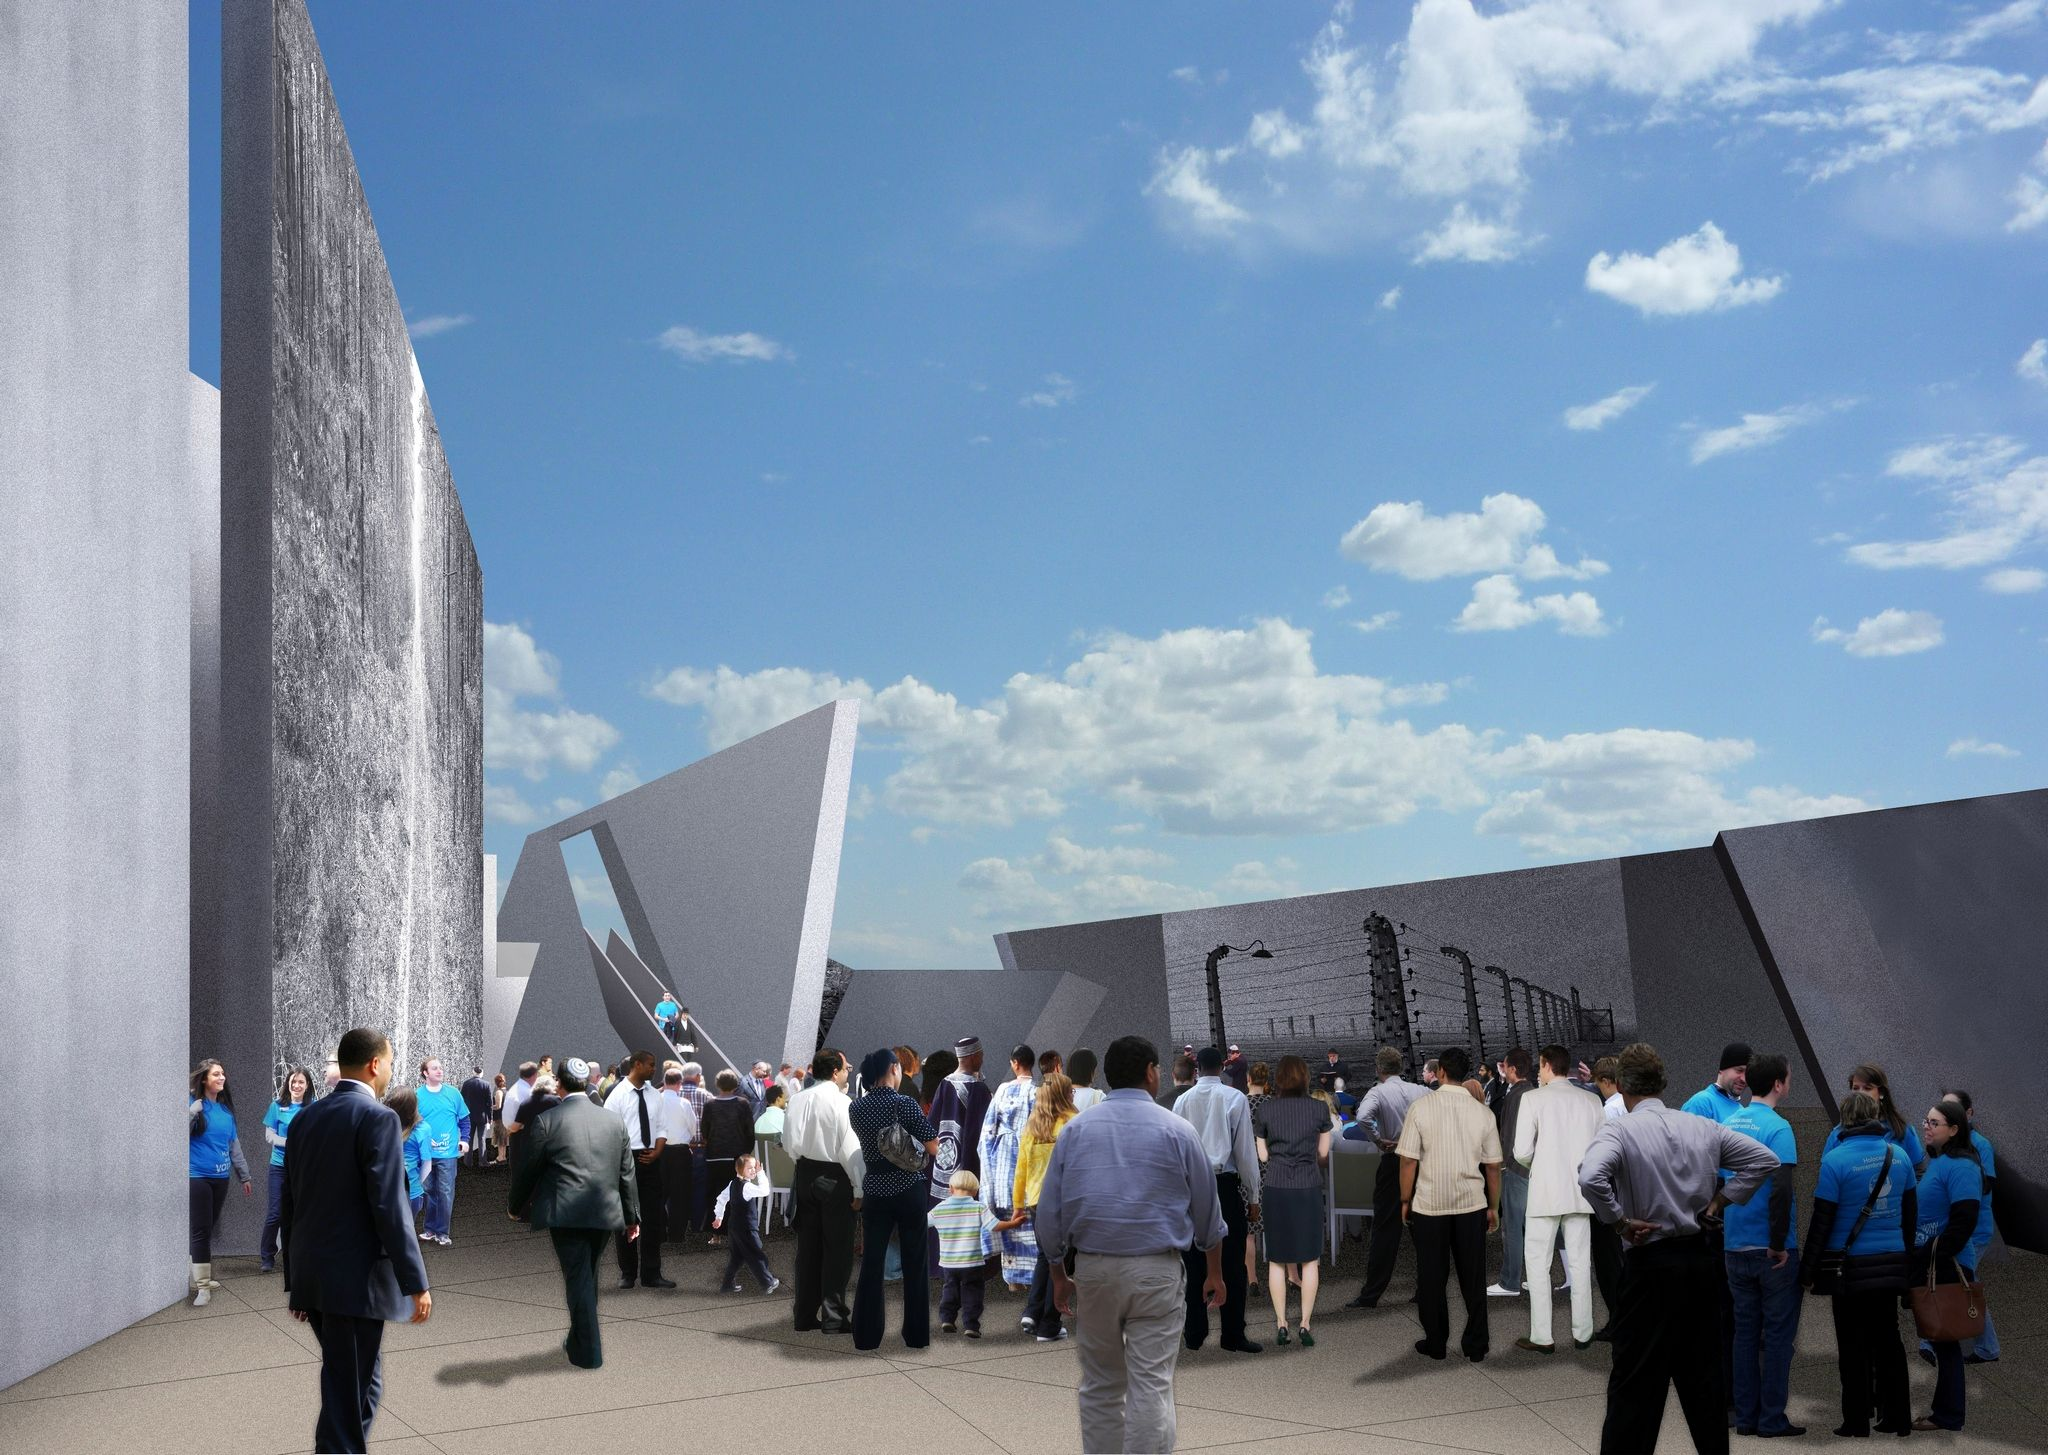 What the central gathering space will look like inside the National Holocaust Monument once completed. Courtesy of NCC